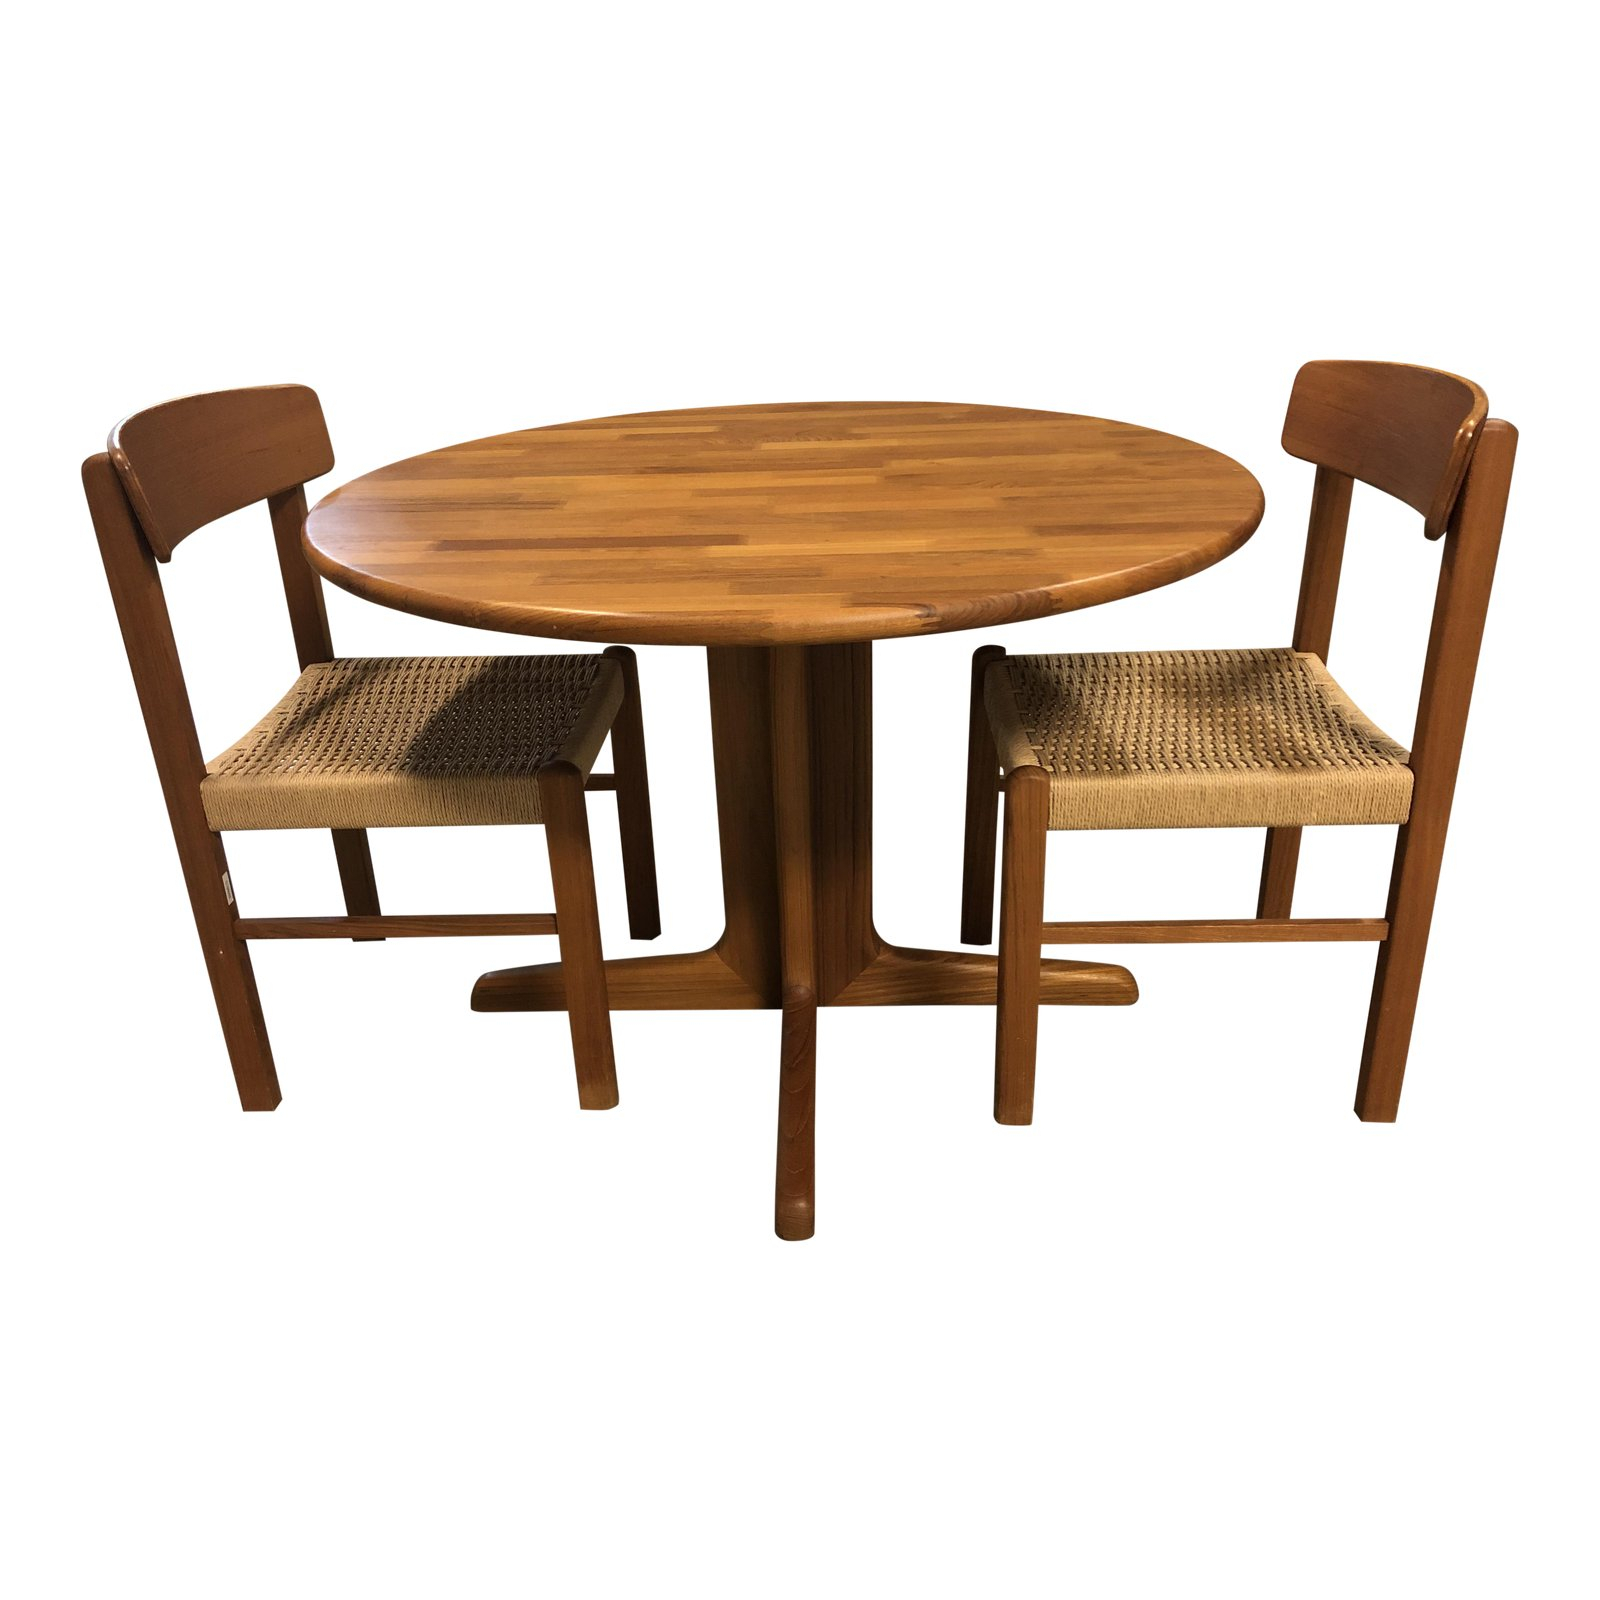 Sun Cabinet – Wood Round Table + Two Side Chairs Original Throughout Most Up To Date Linden Round Pedestal Dining Tables (View 12 of 25)